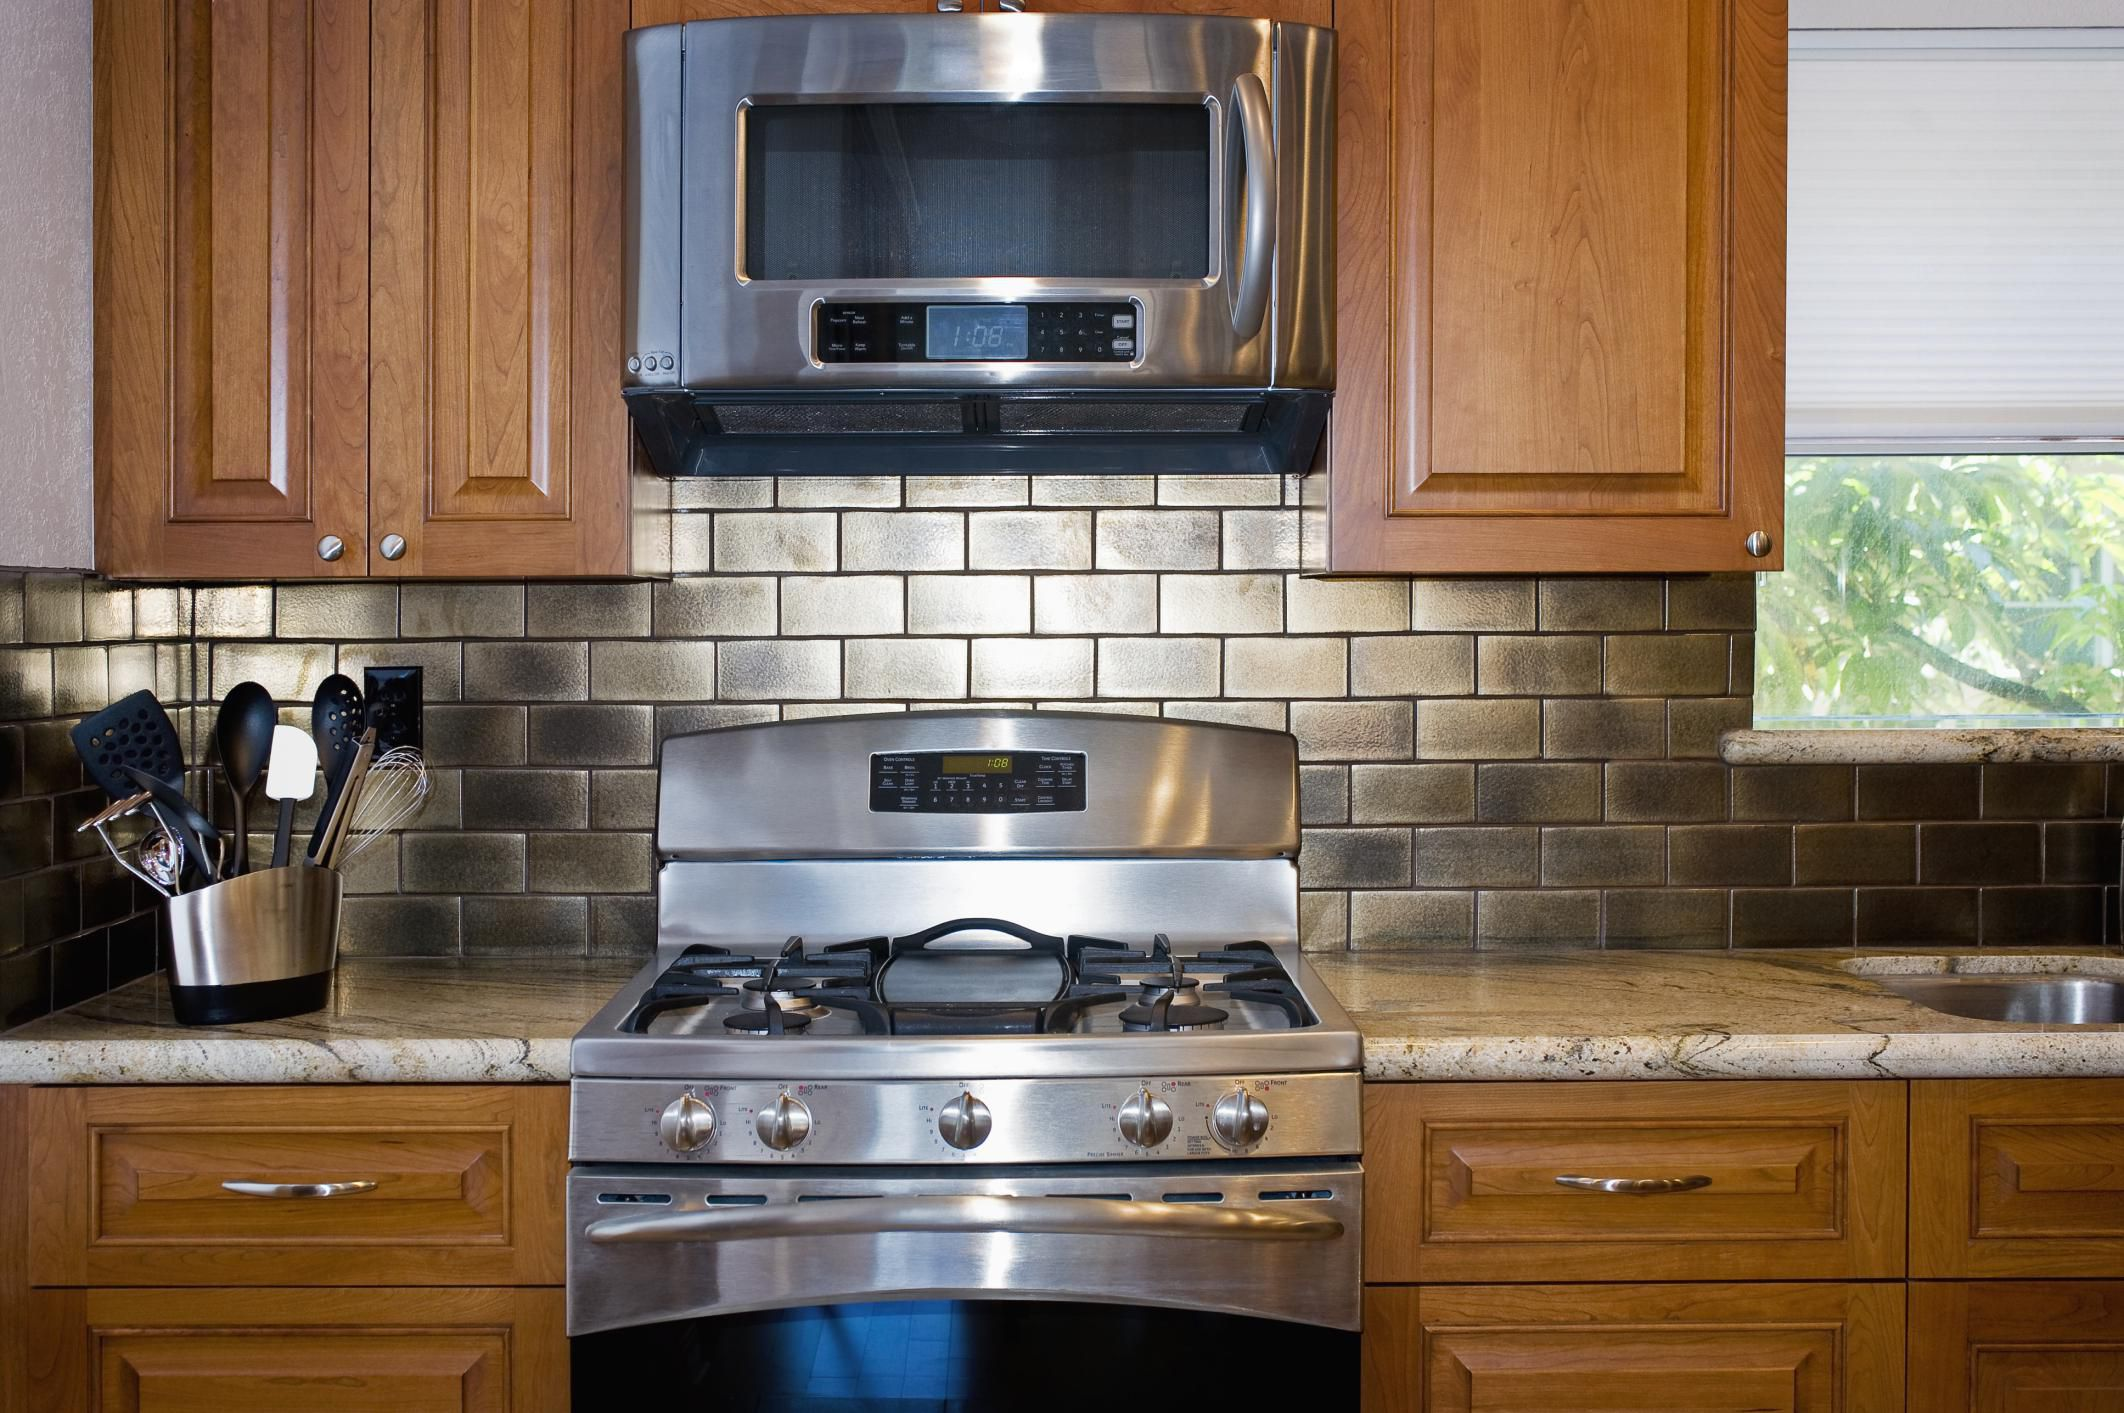 Installing an over the range microwave - Easy Steps You Can Take To Install Built In Microwave